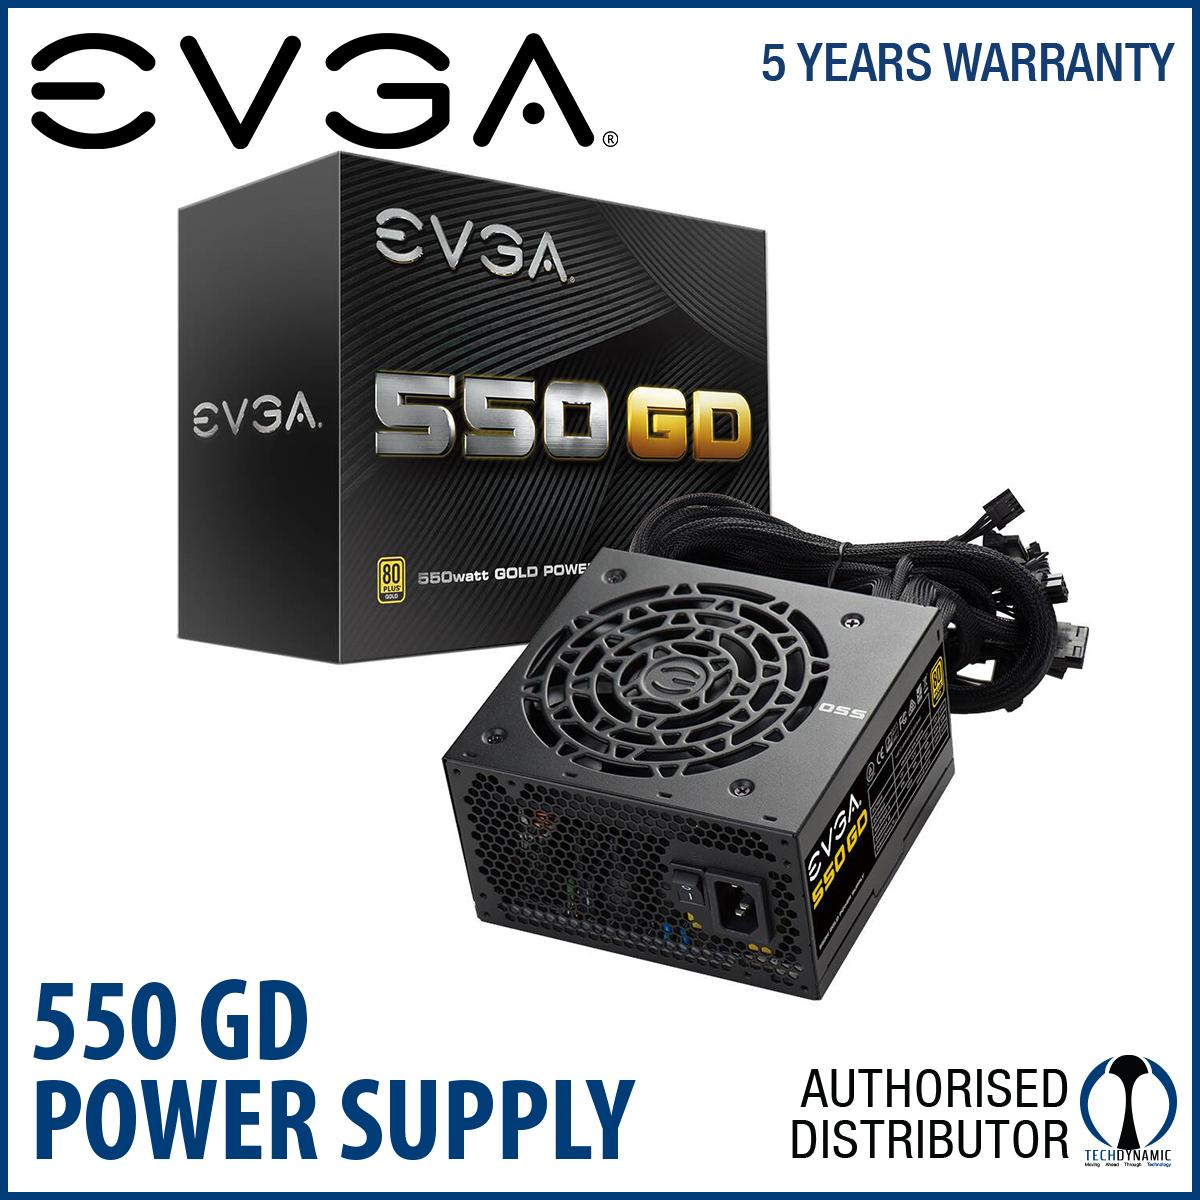 New Evga 550 Gd Power Supply